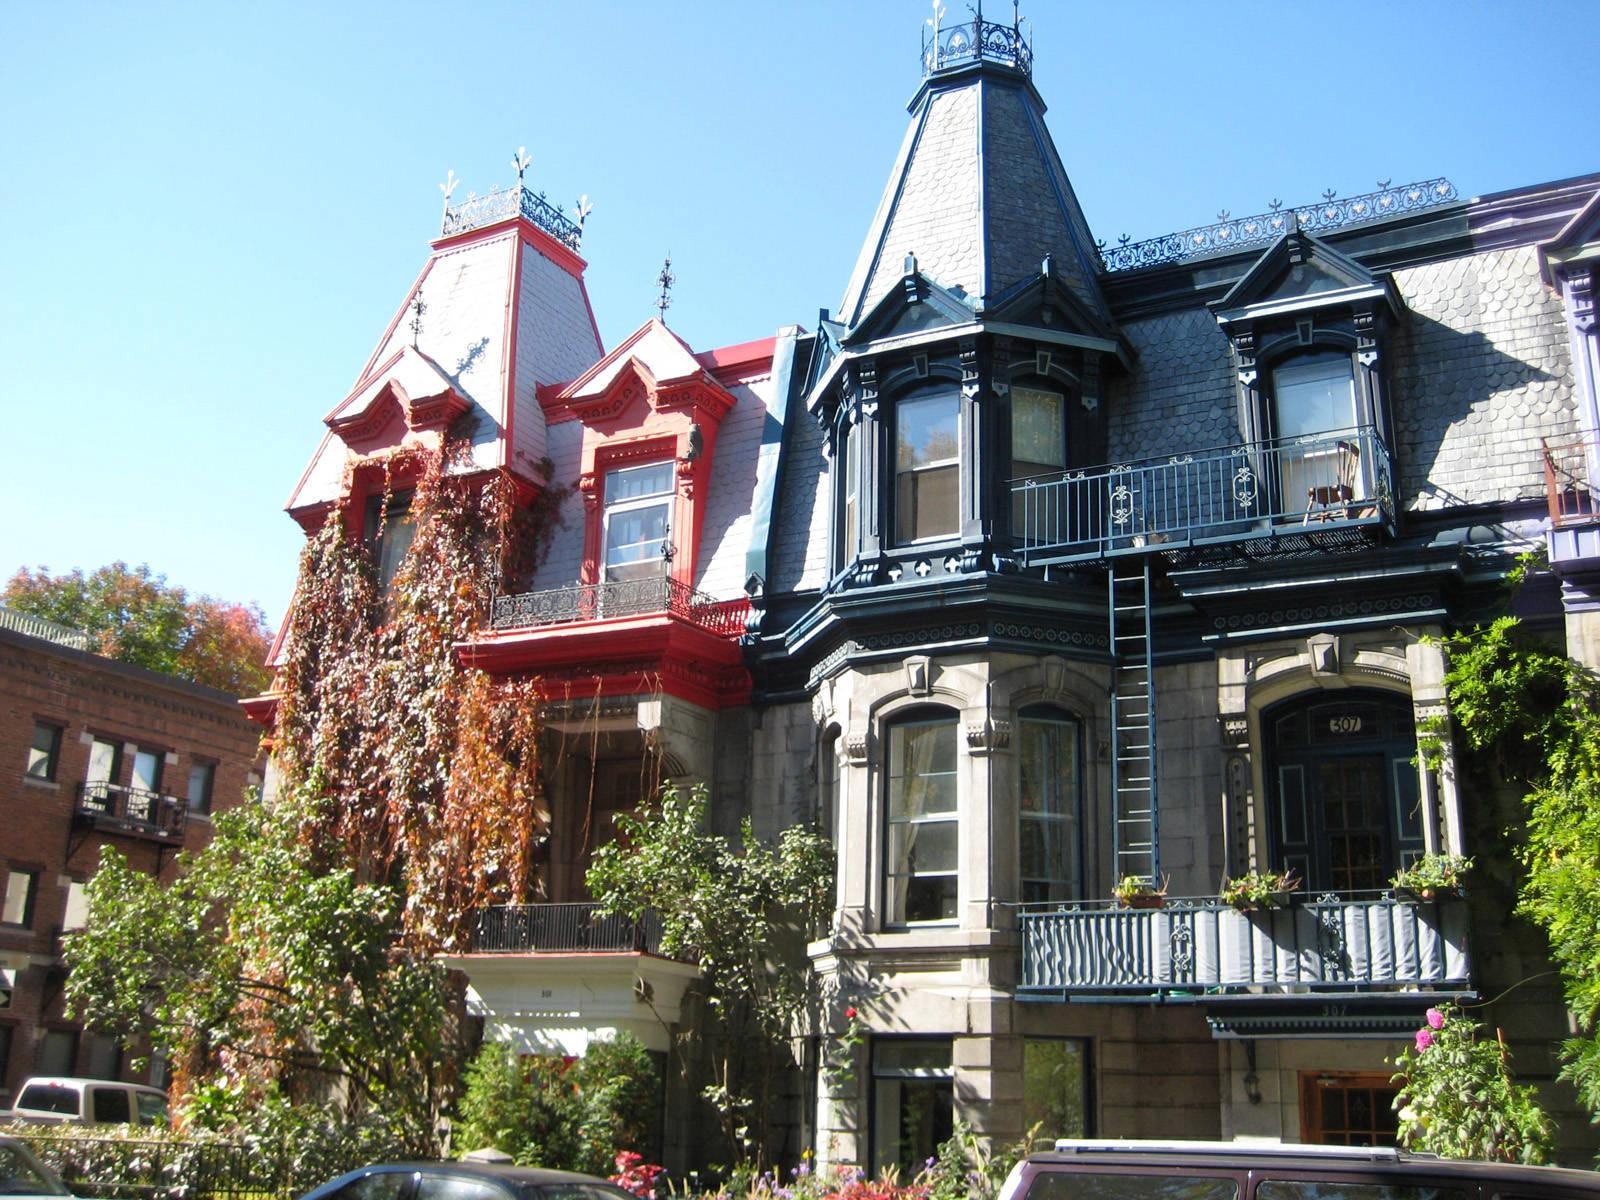 St Louis square homes in Montreal city | city wallpaper